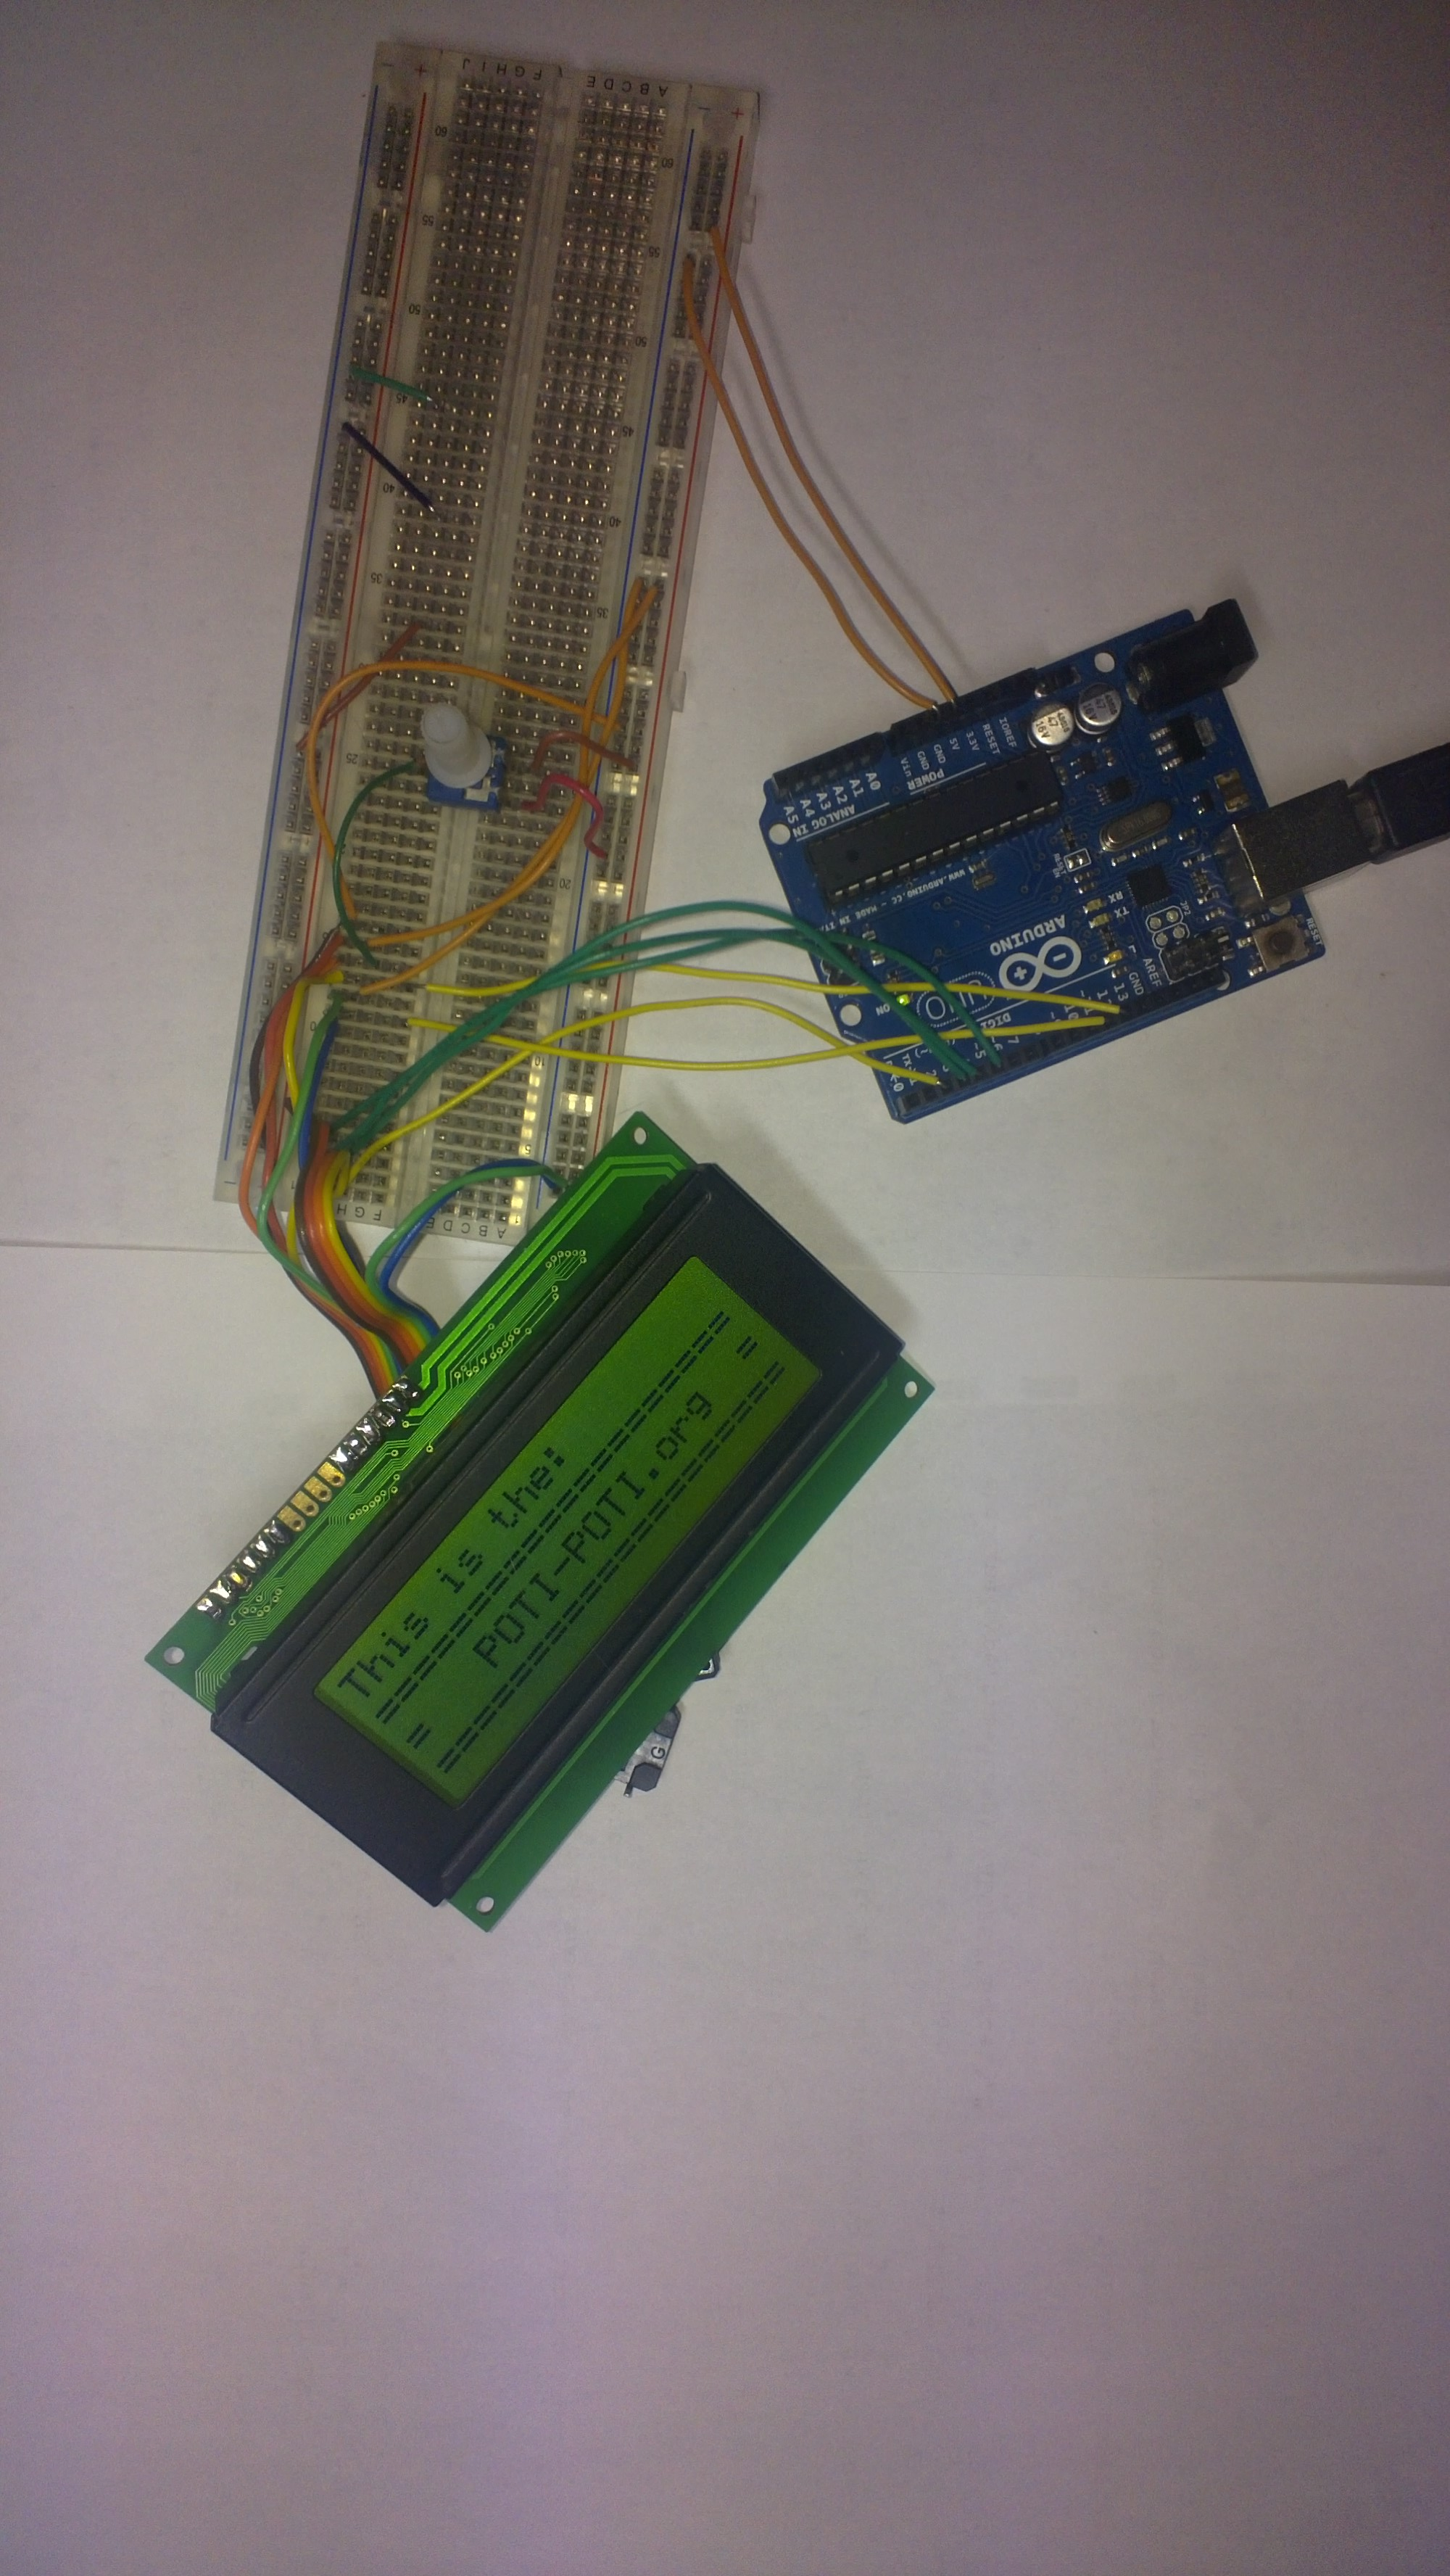 POTI-POTI ORG » How to connect 20×4 LCD screen to arduino and make